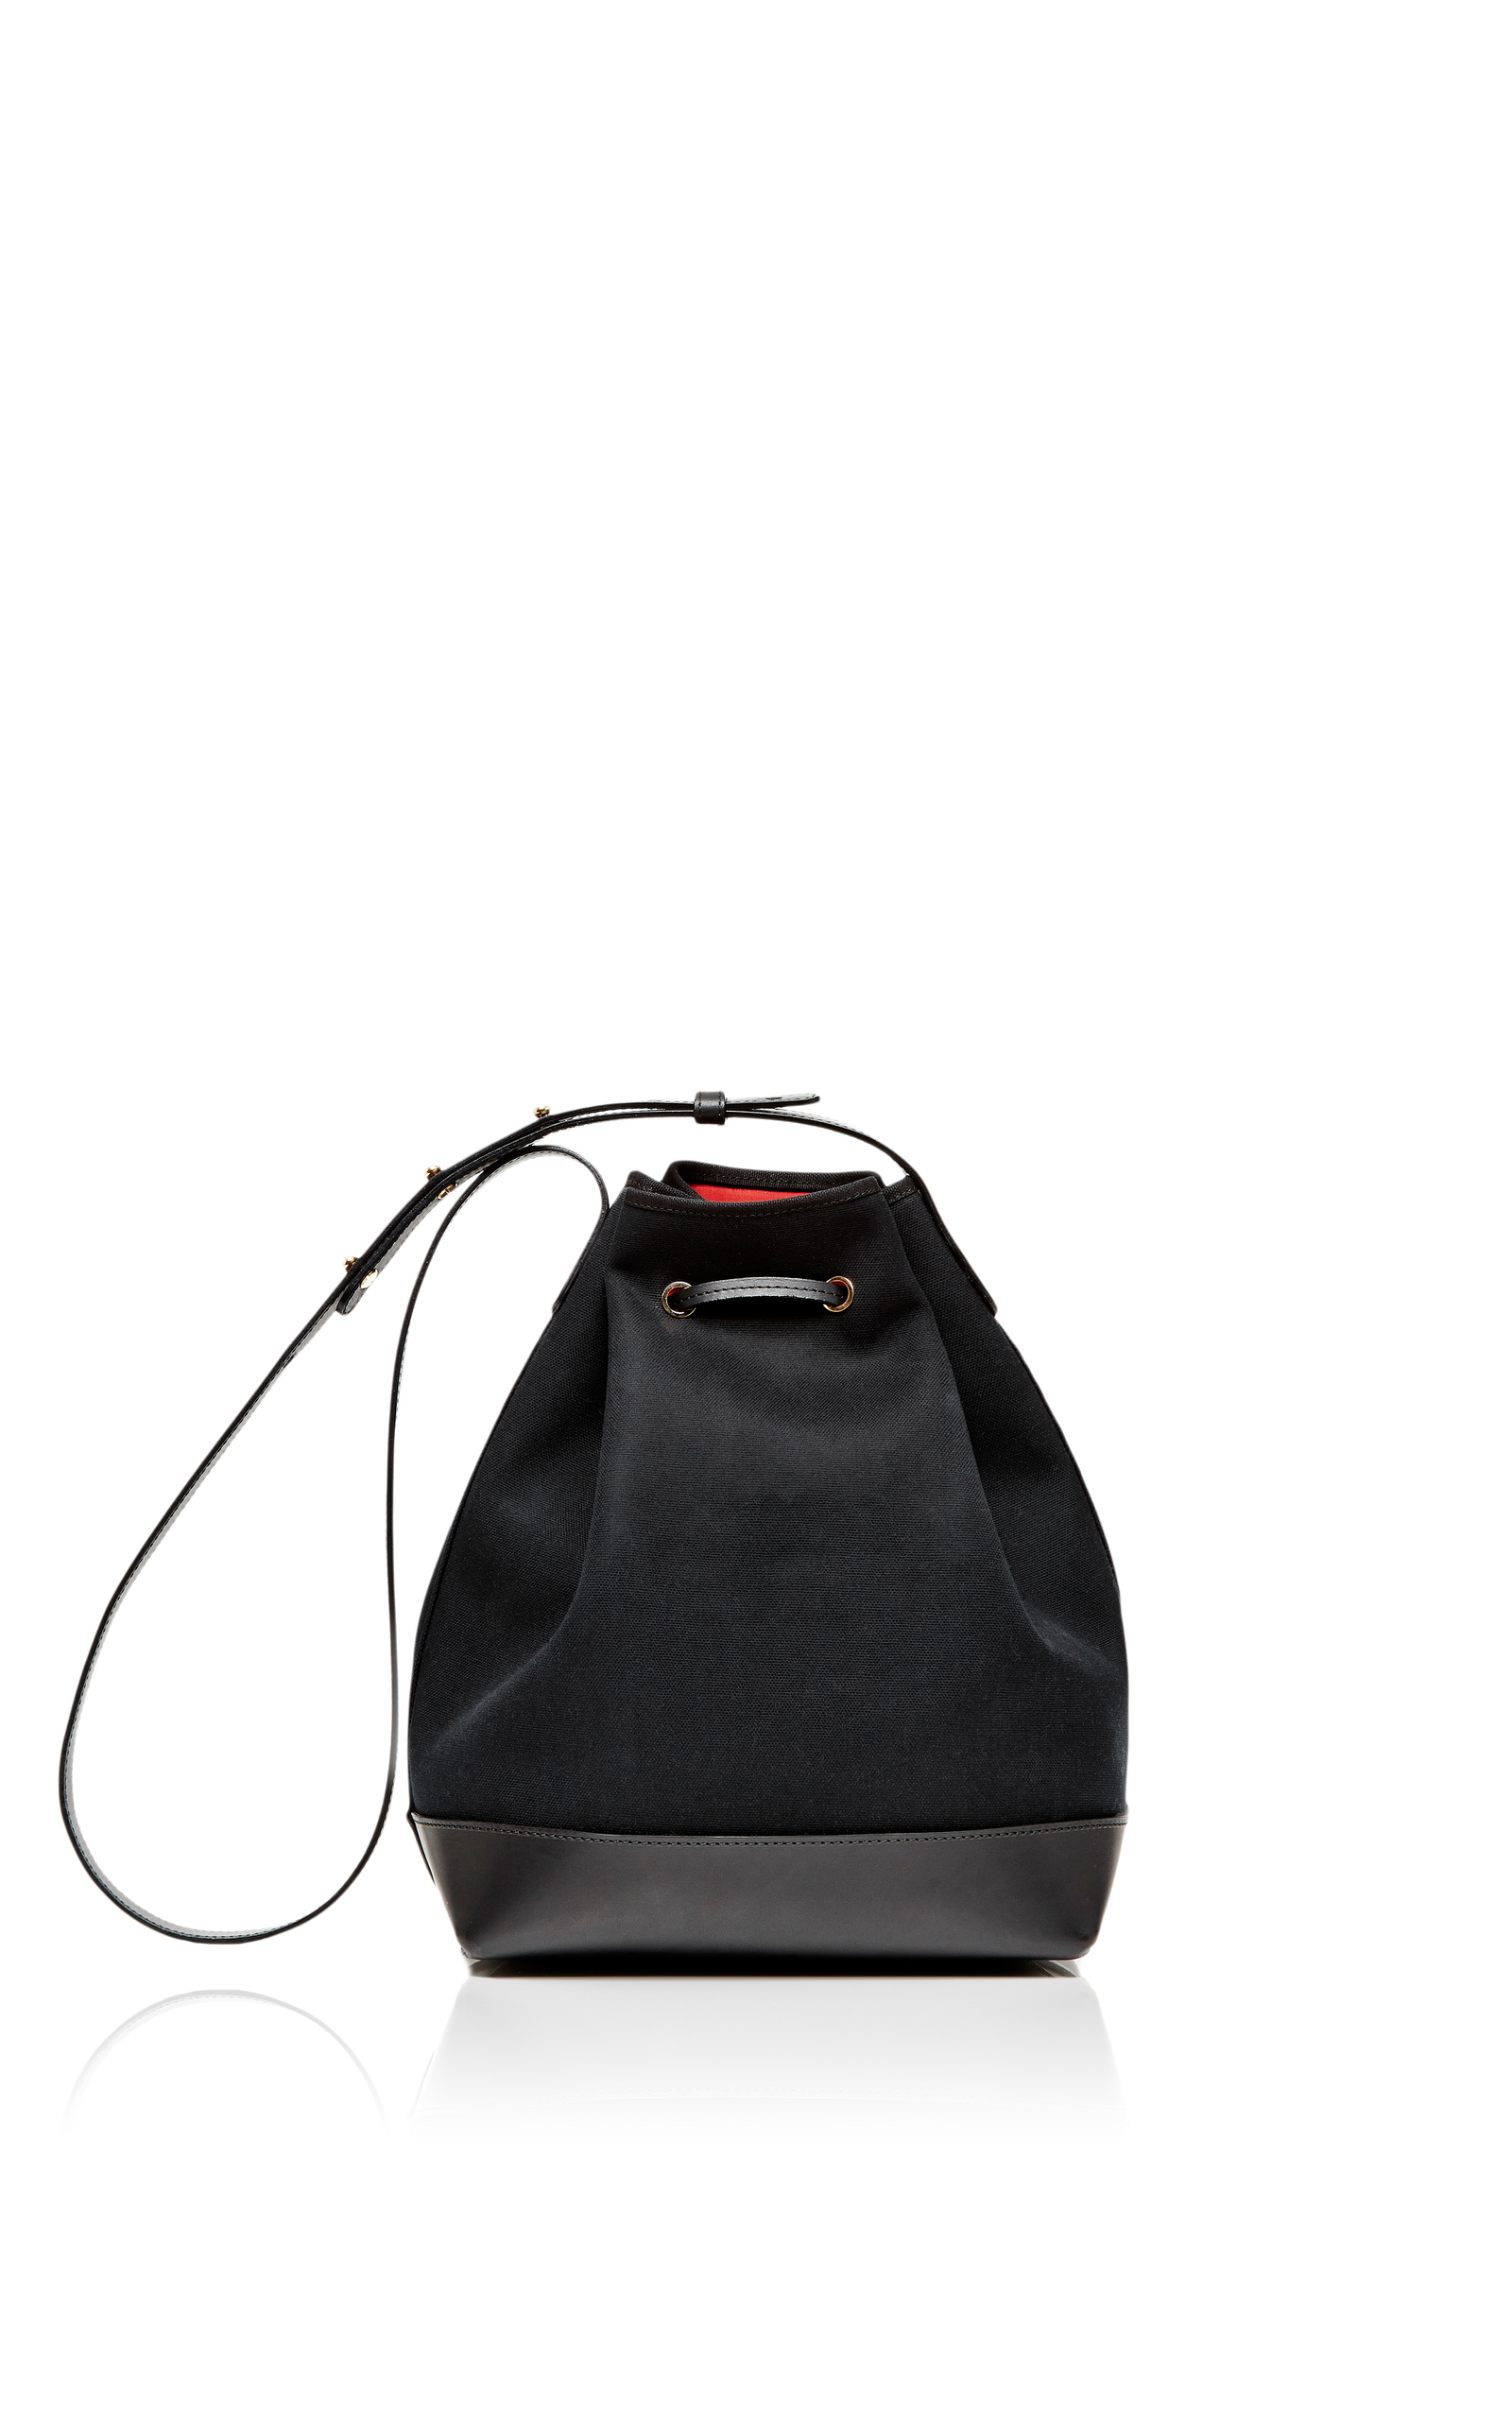 f76748a79025 Mansur GavrielBlack Canvas and Leather Bucket Bag. CLOSE. Loading. Loading.  Loading. Loading